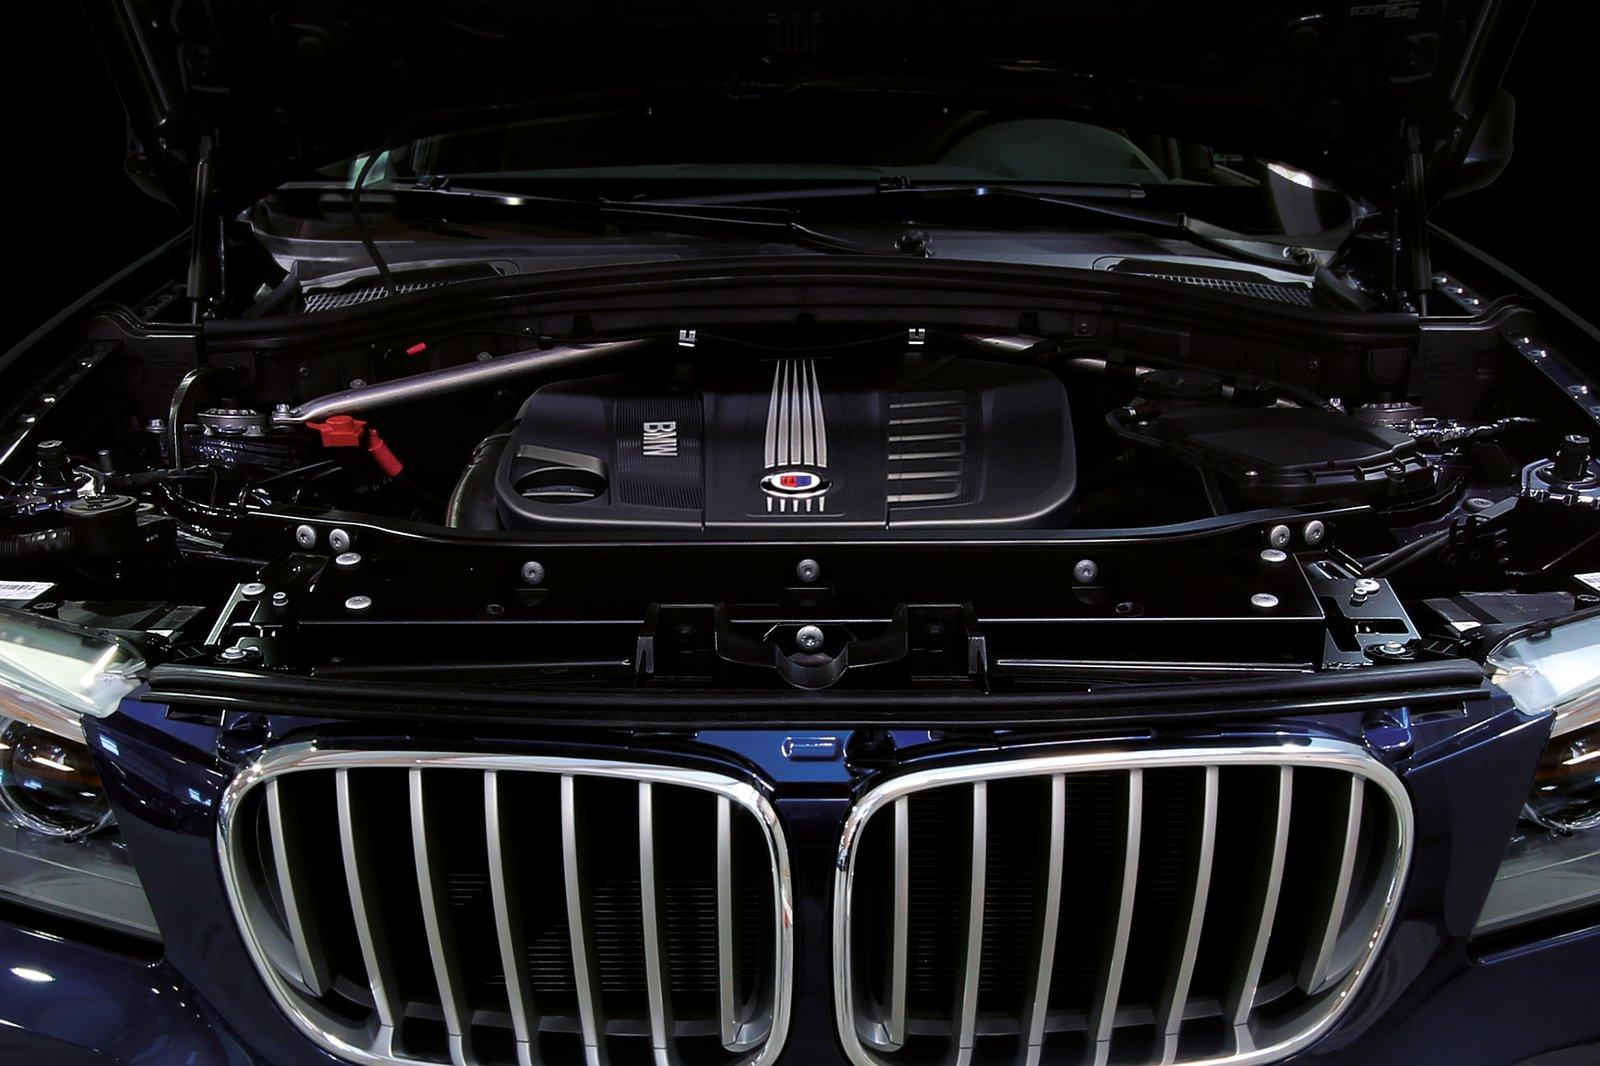 bmw core competence Home/news releases/ bmw group invests 200 million euros in battery cell competence centre bmw group invests 200 million euros in  of core competence.